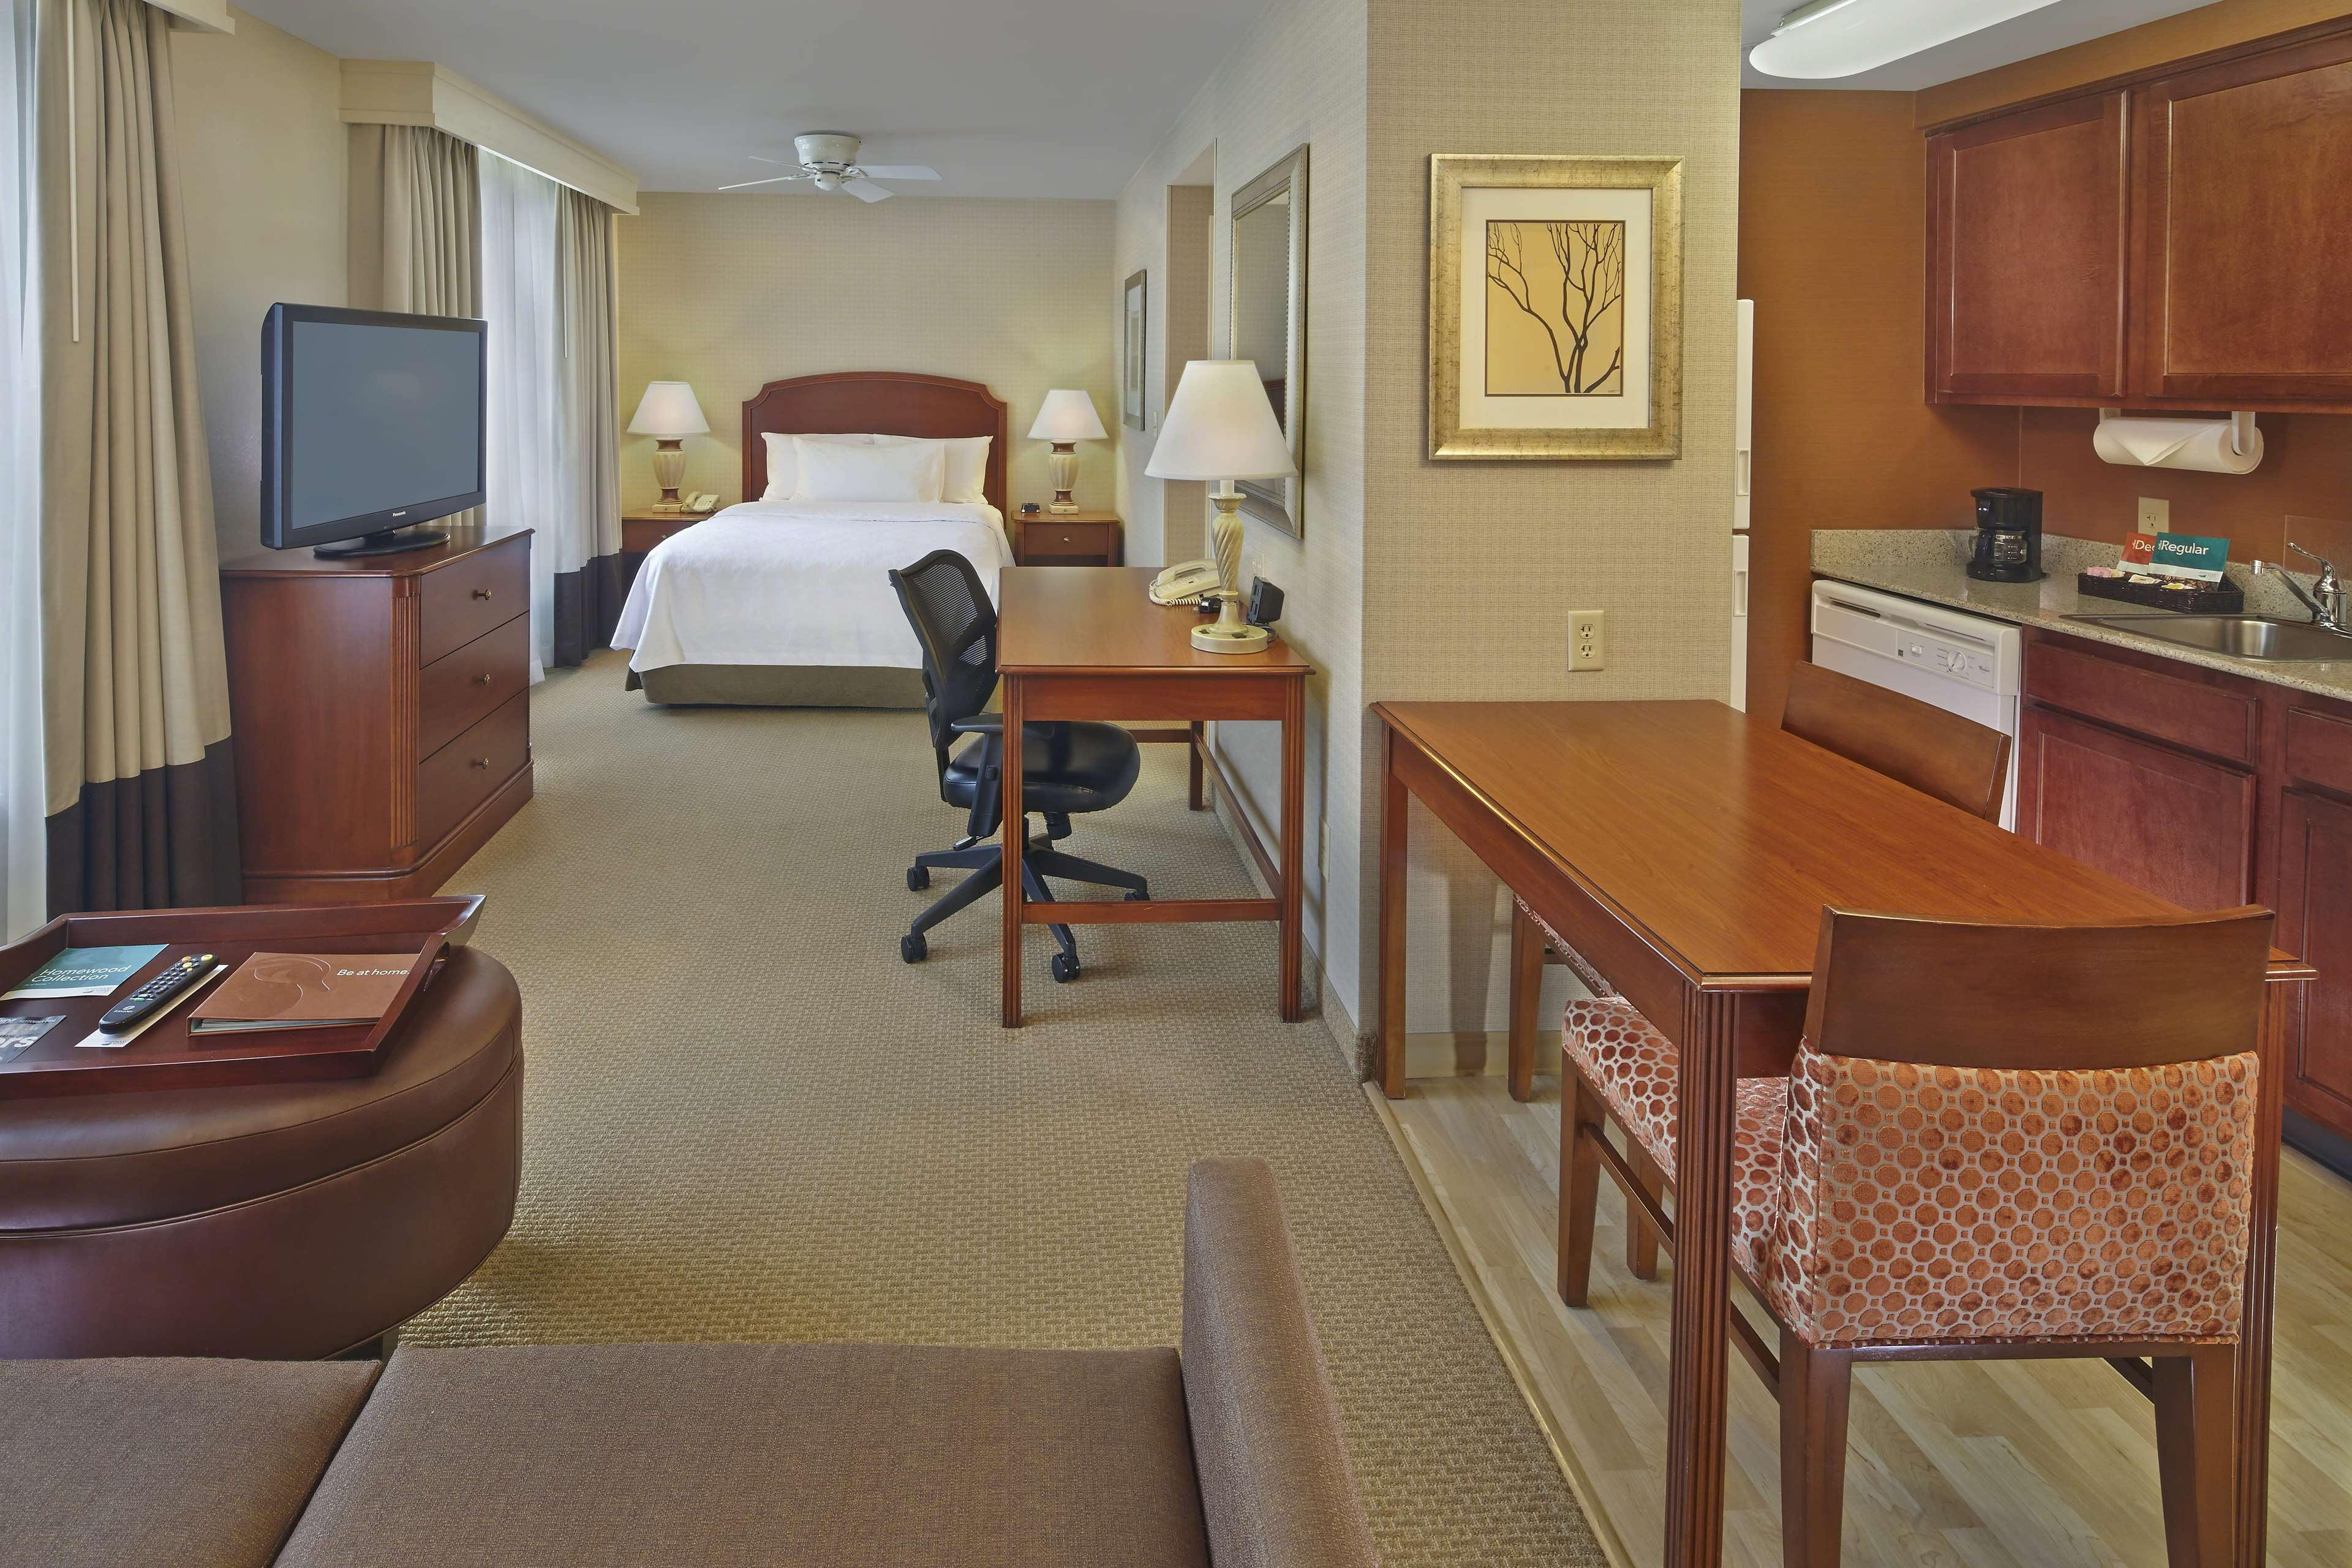 Homewood Suites by Hilton Columbia image 14